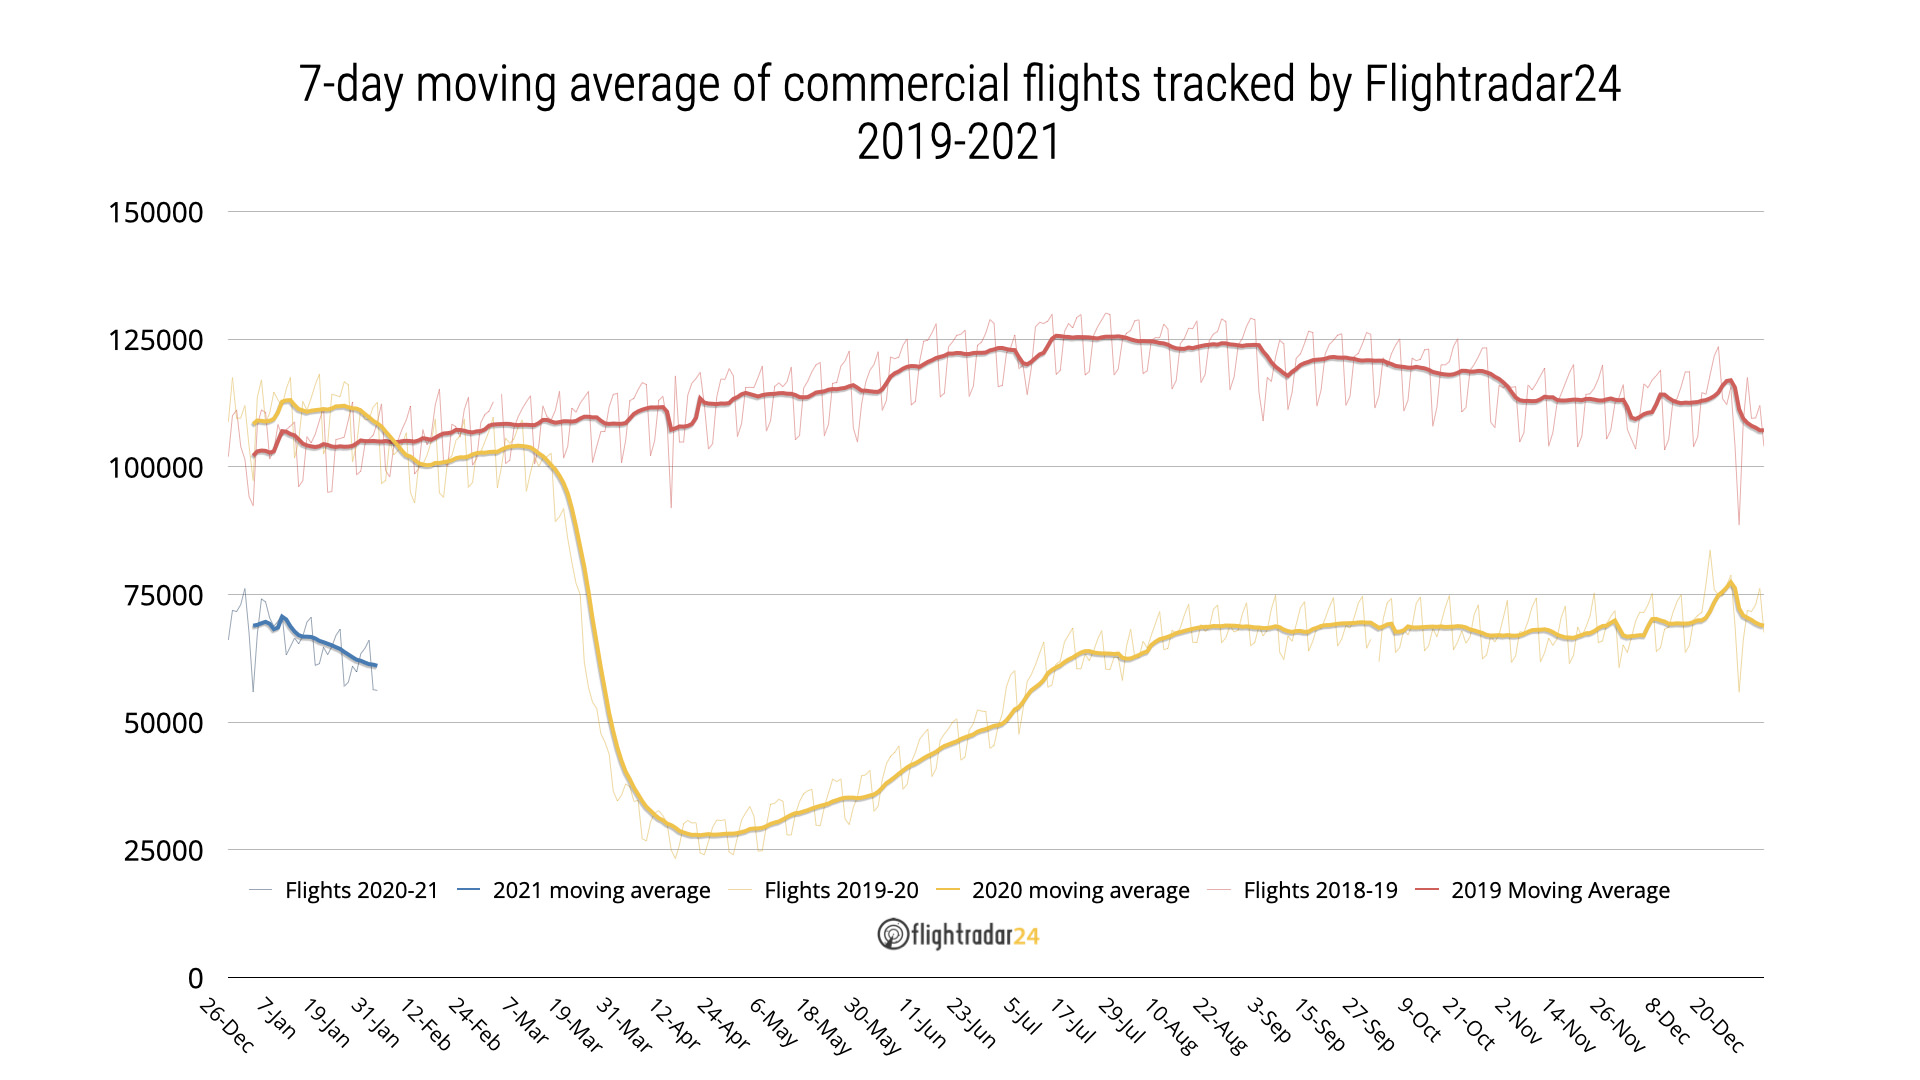 Line graph of commercial flights tracked by Flightradar24 in 2019, 2020, and 2021 with the 7-day moving average shown for each overlaid on top of the raw data